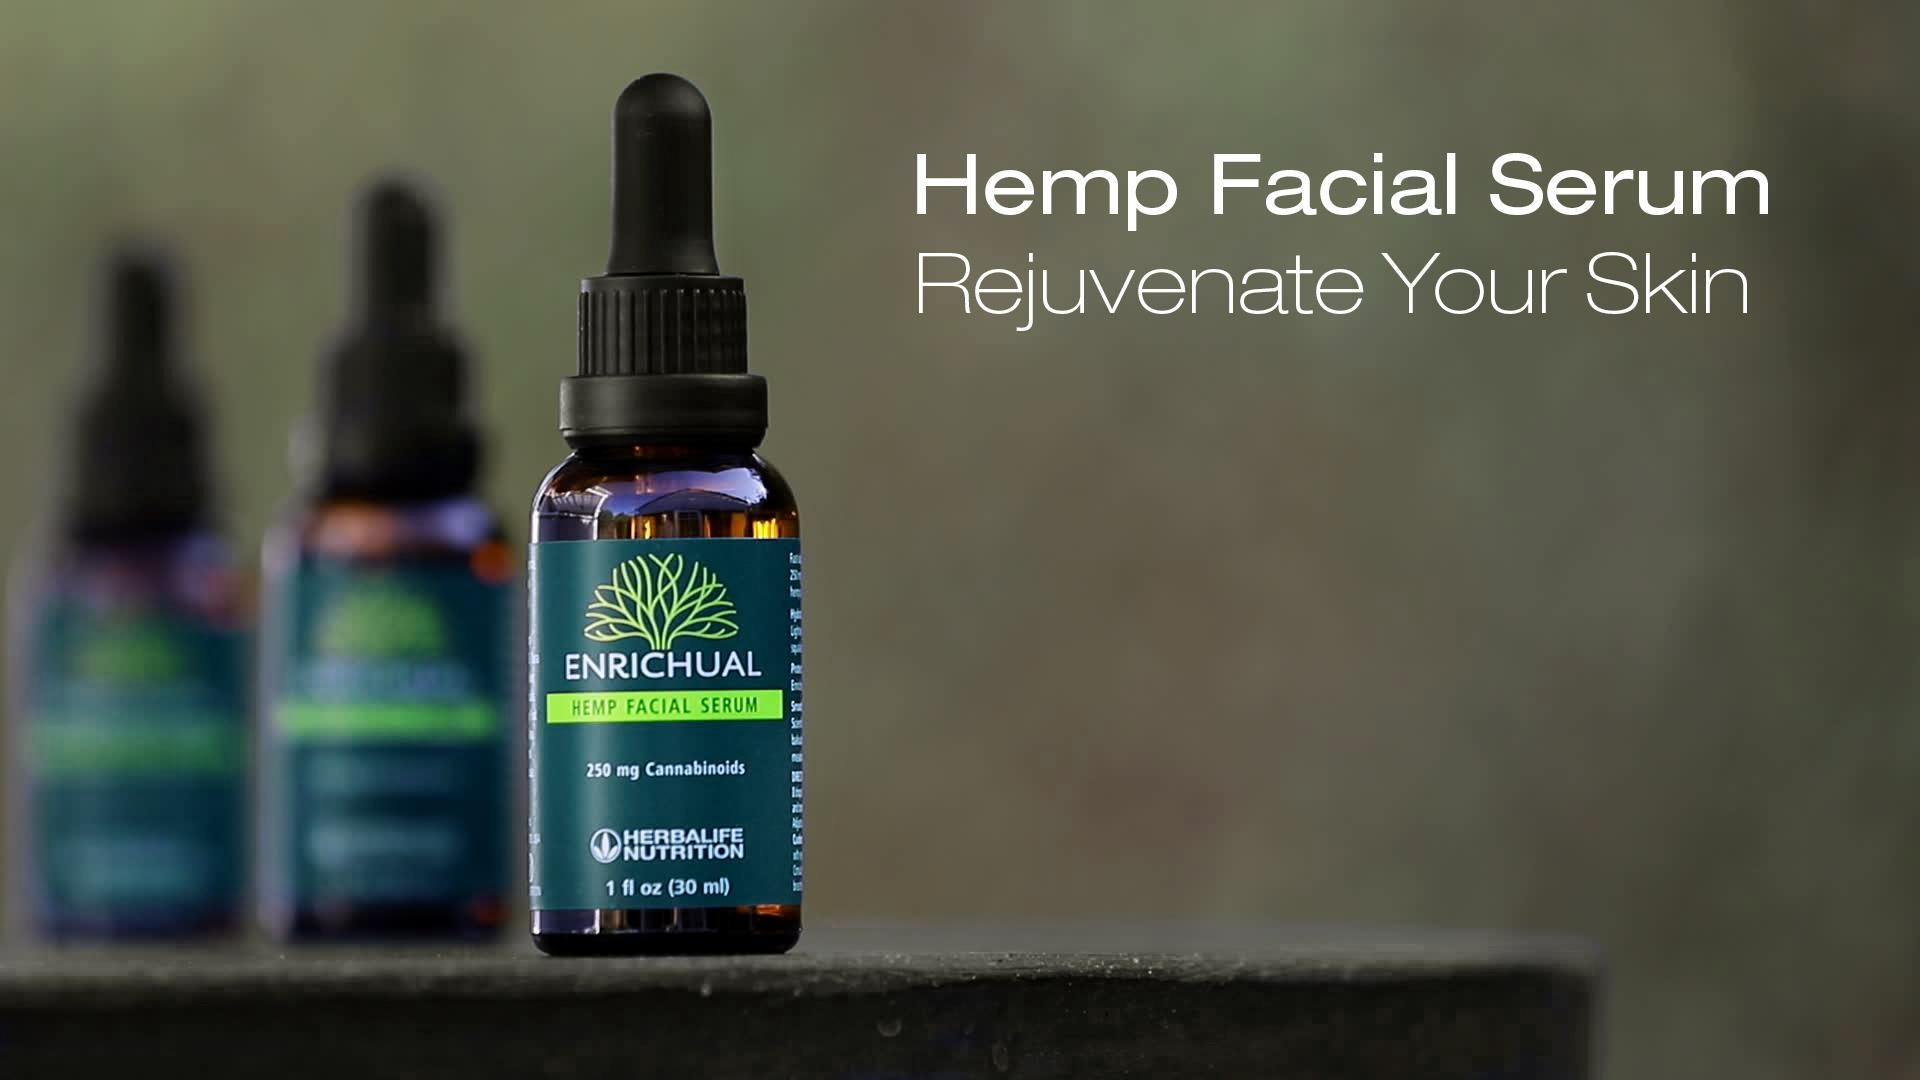 Enrichual Hemp Facial Serum: Know the Products